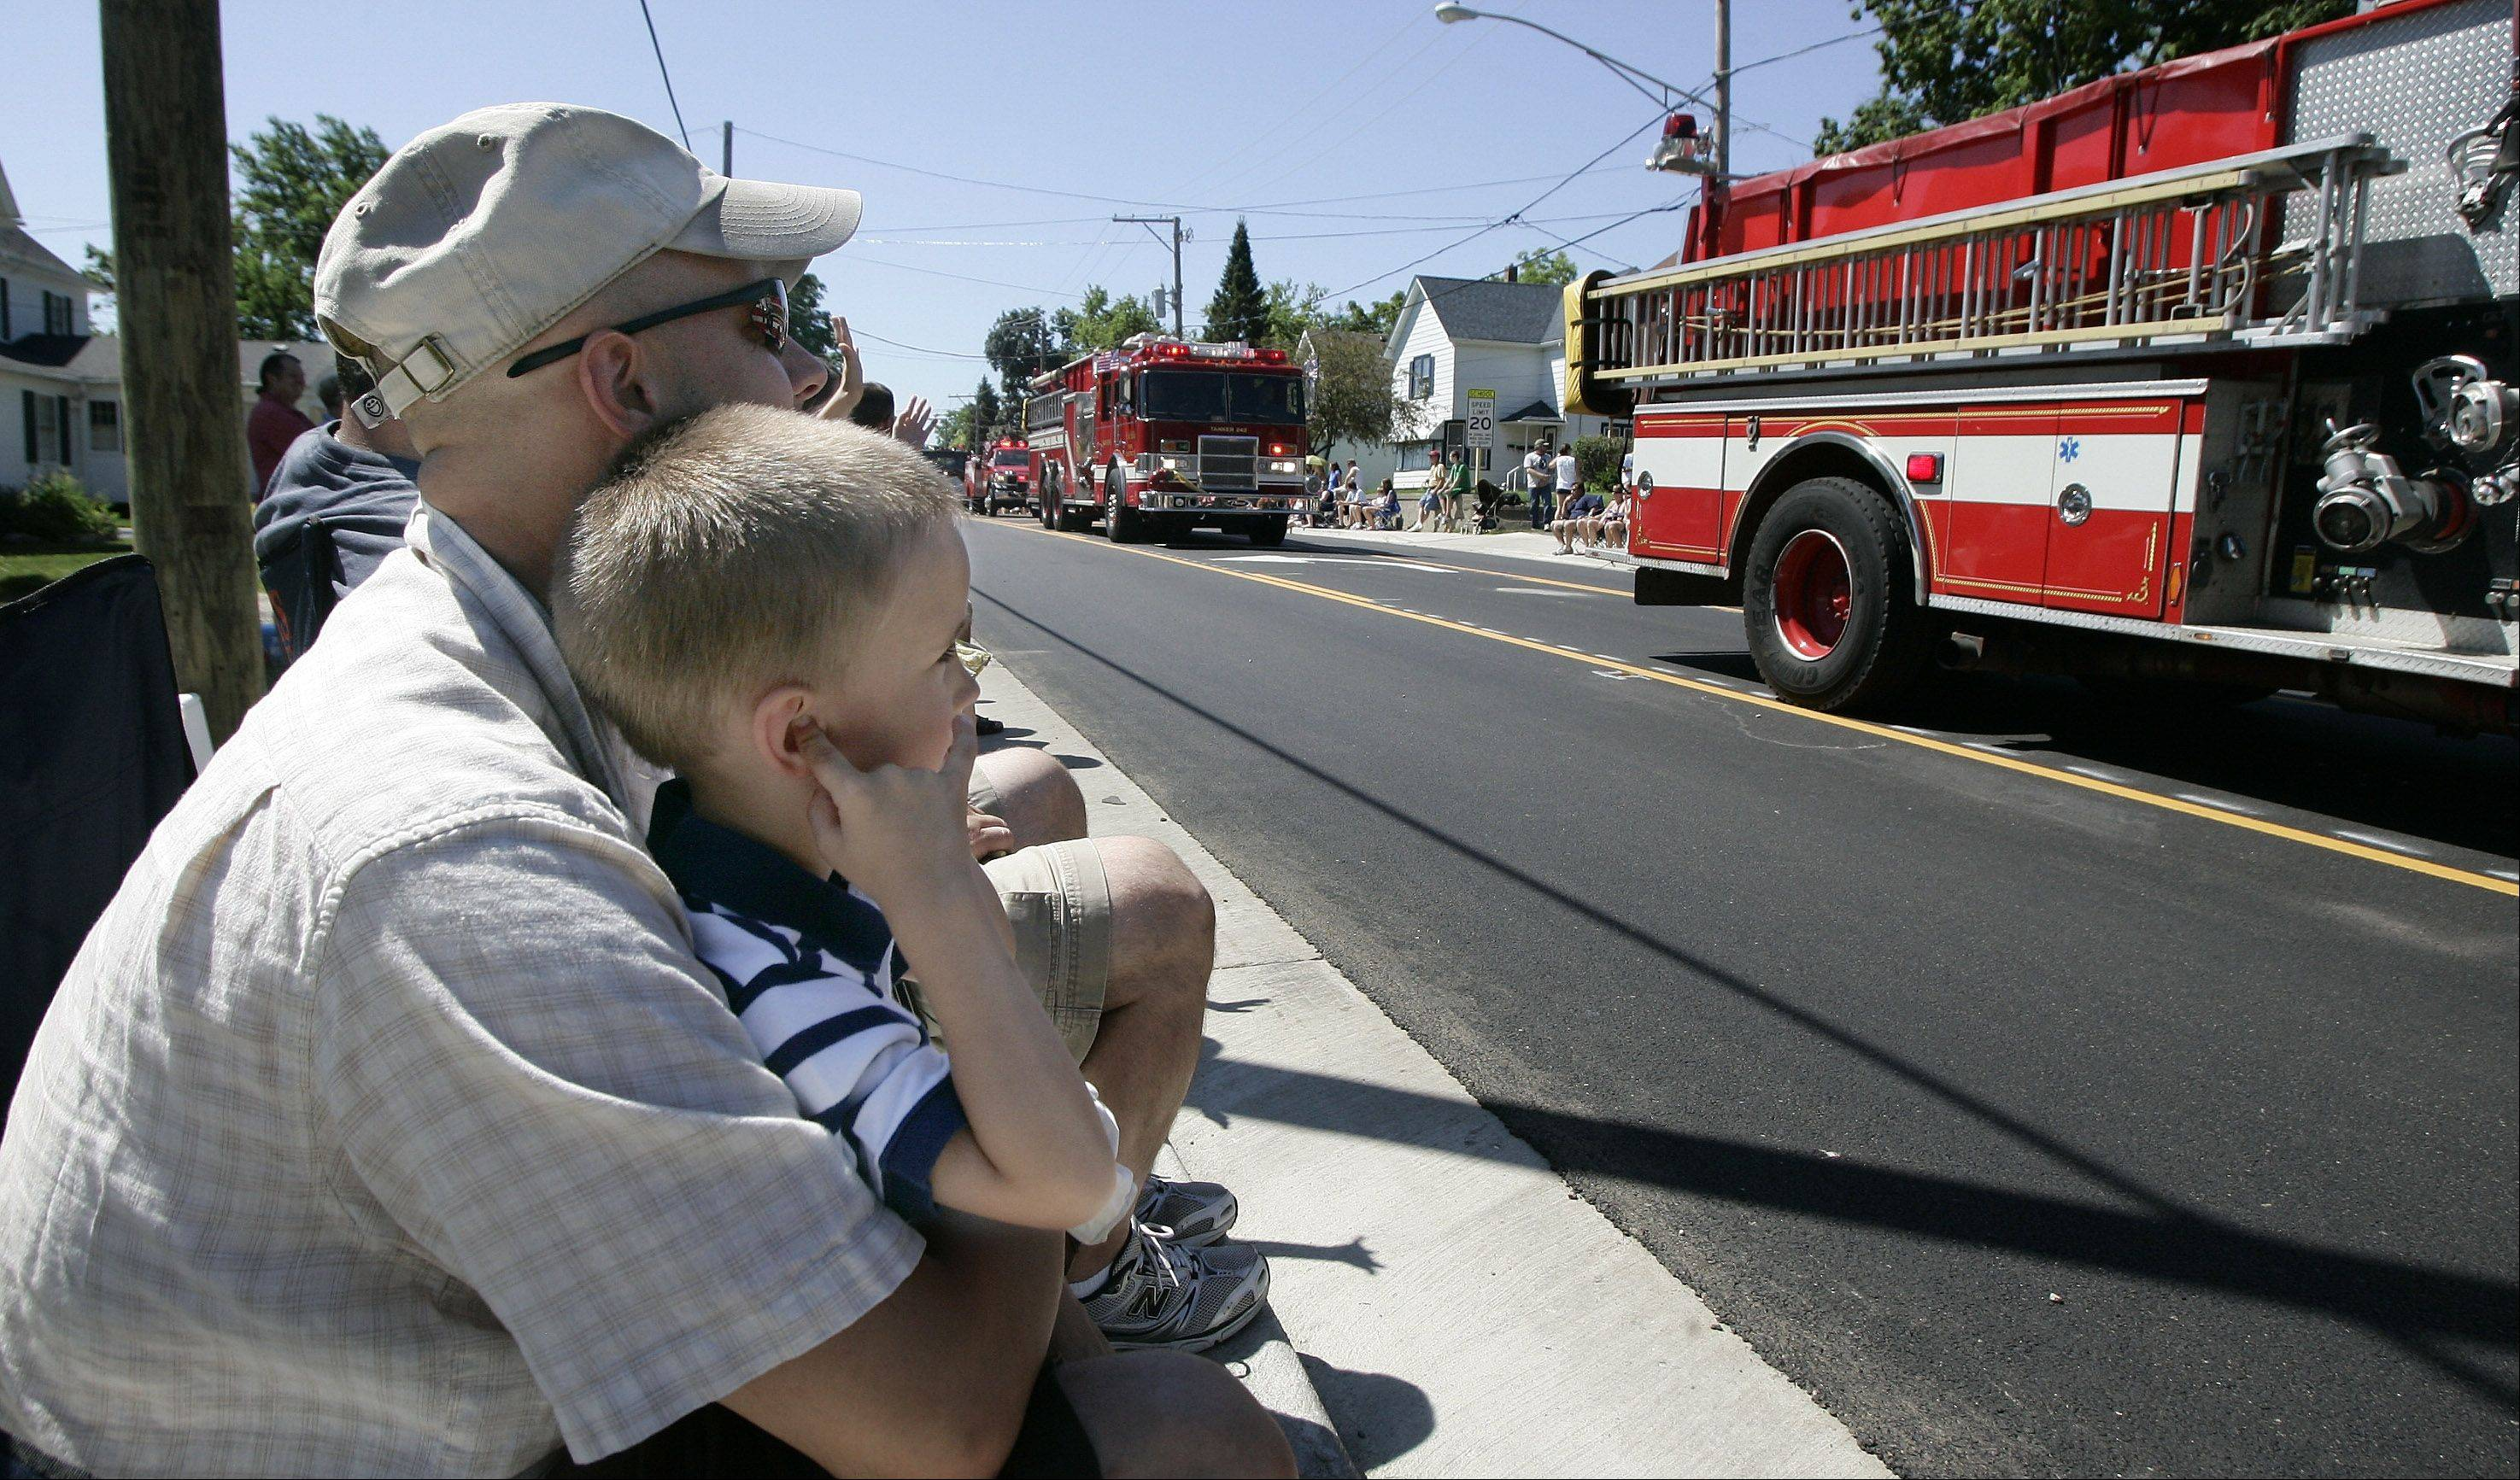 Adam Spisak, 4, of Lake Villa covers his ears as he watches the fire engines go by with his dad, Joe, during the Antioch Fourth of July parade Monday.